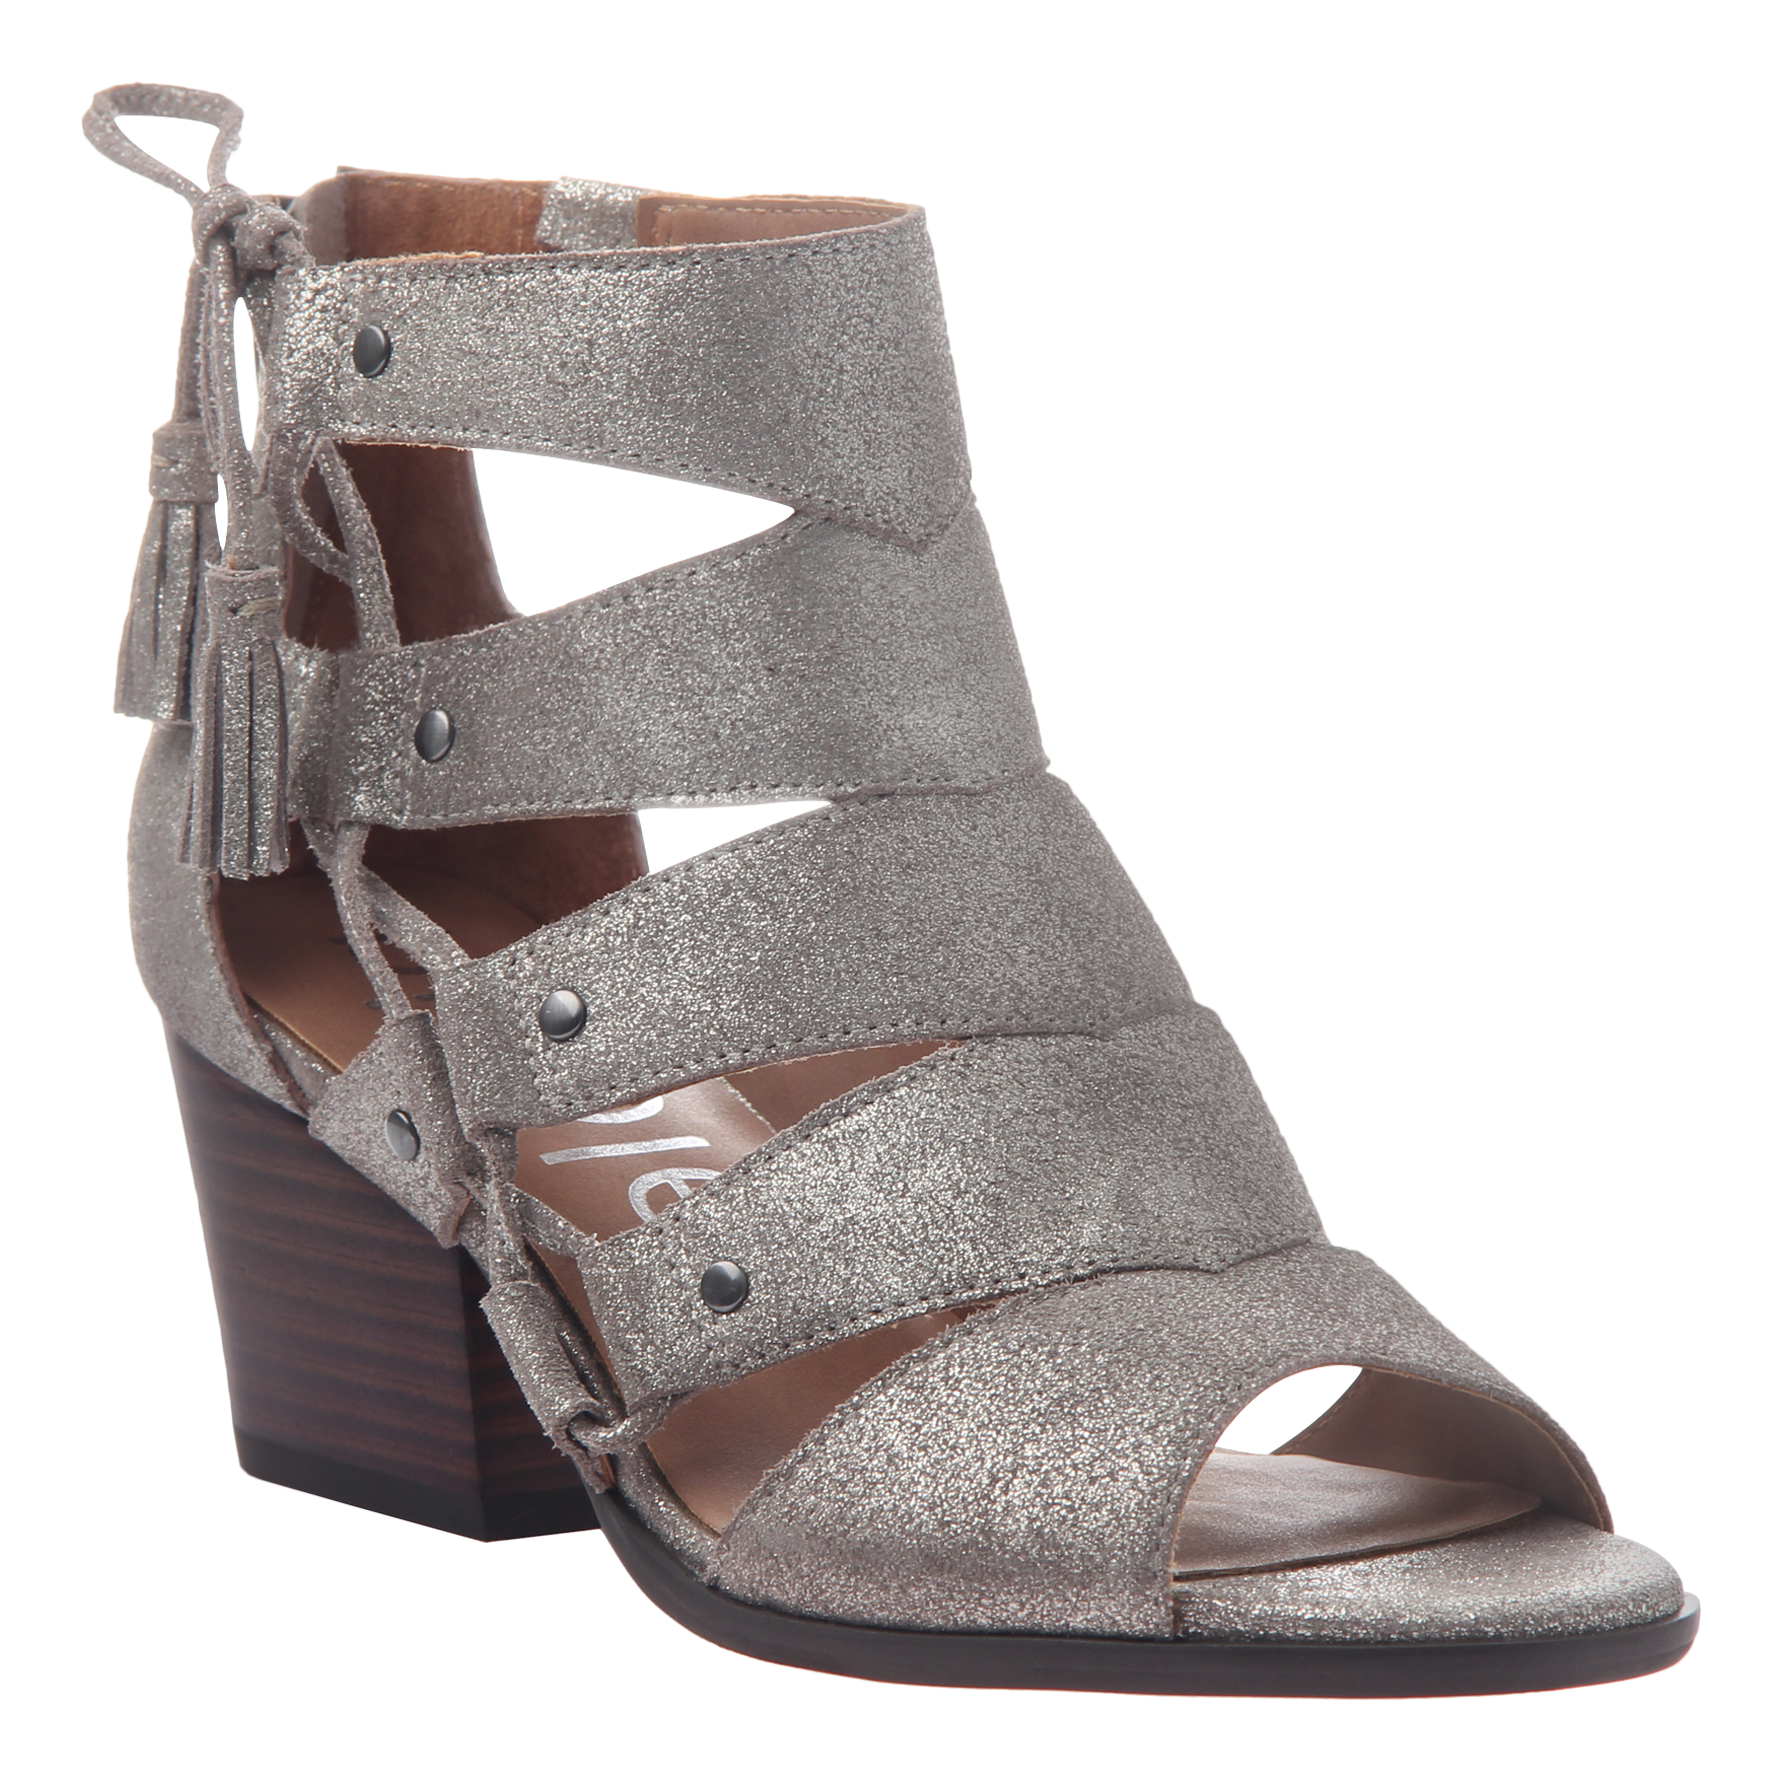 Tatiana womens heeled sandal in grey silver